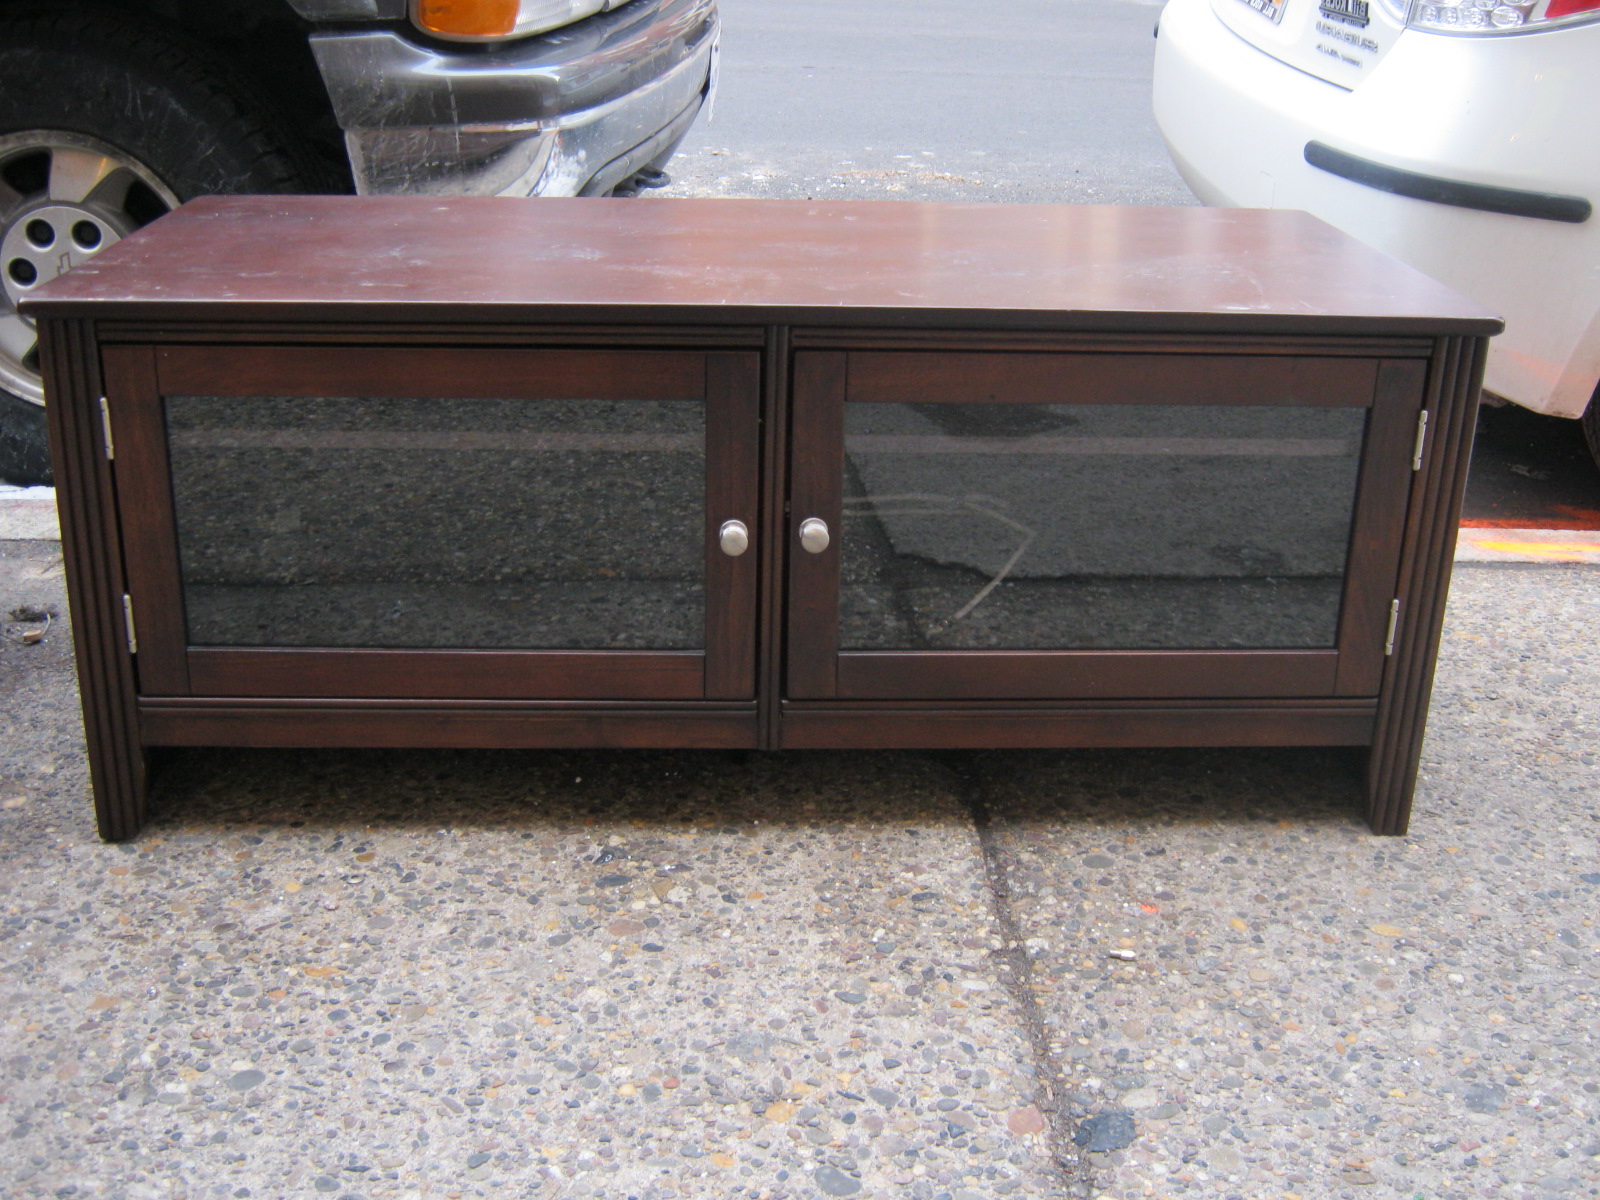 Glass Front Tv Stands Within Recent Uhuru Furniture & Collectibles: Glass Front Tv Stand Sold (View 2 of 20)